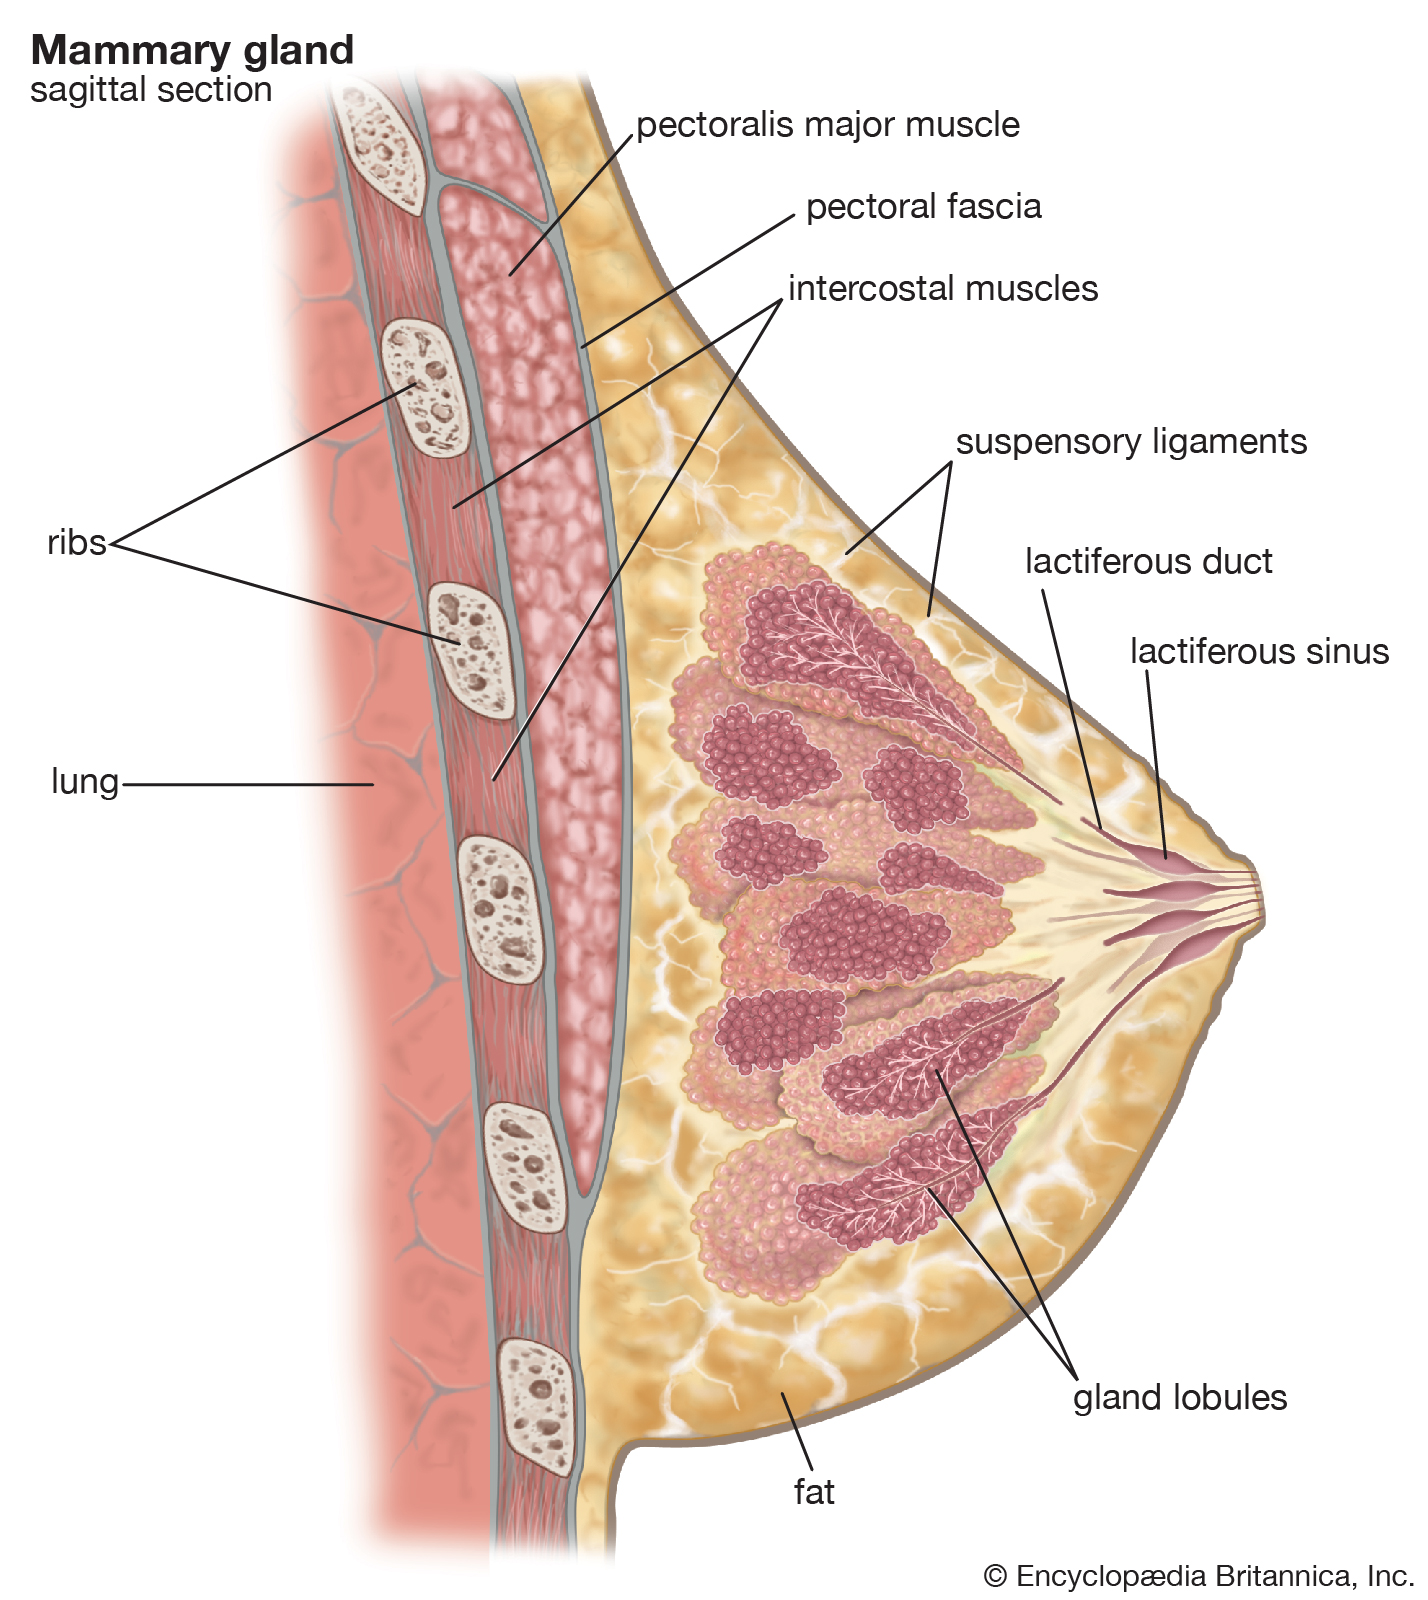 an Encyclopedia Britannica chart showing a woman's mammary gland